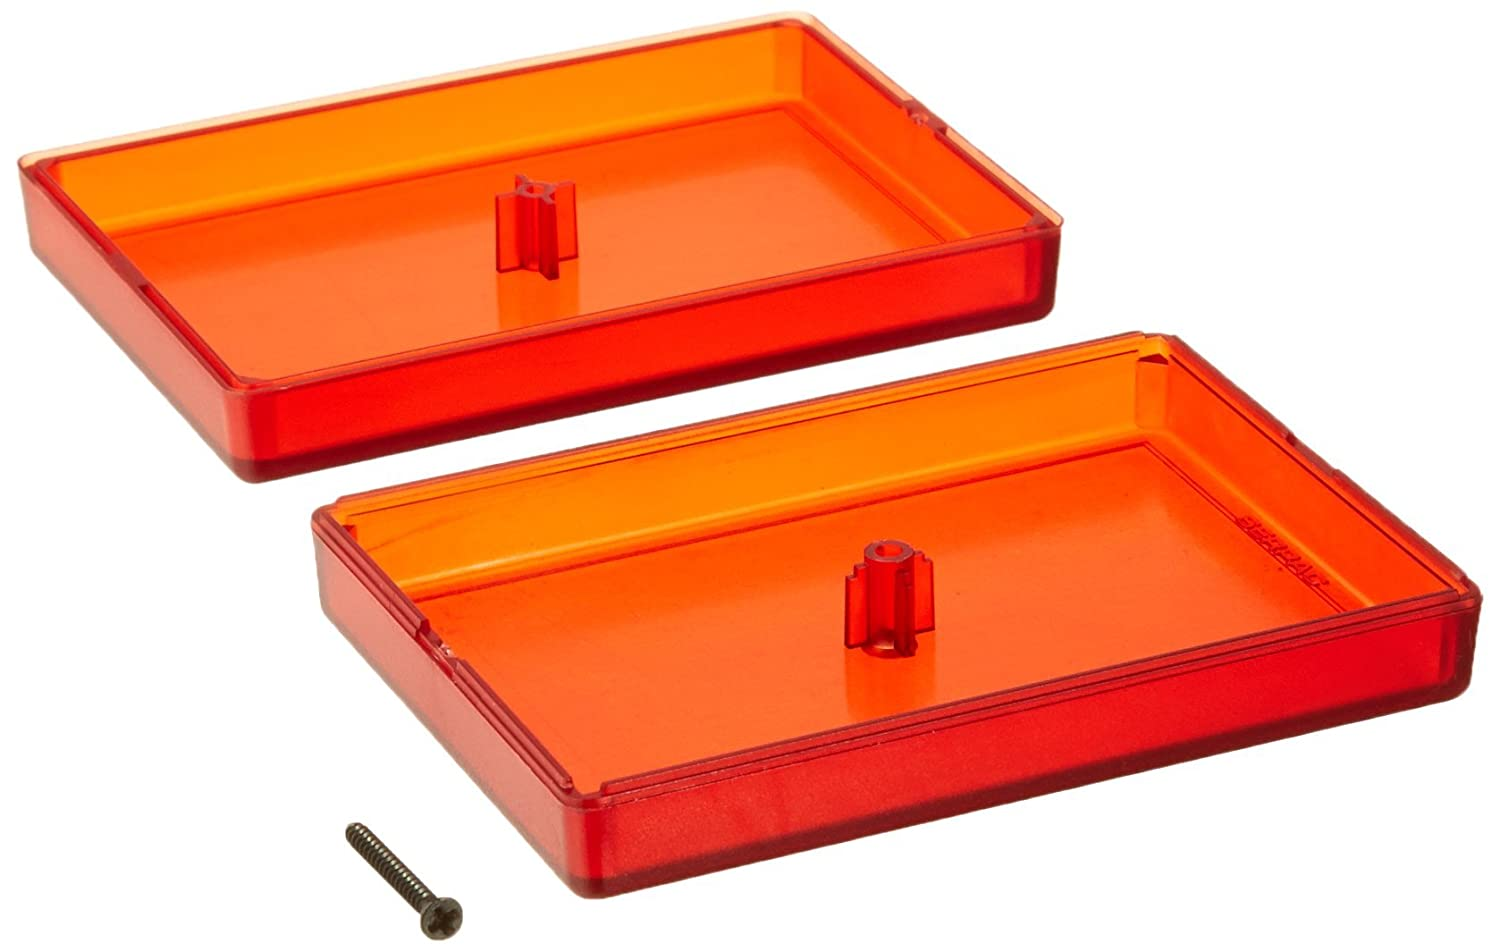 Serpac C10 ABS Plastic Enclosure 2.30 Length x 3-1//4 Width x 0.80 Height Translucent Red